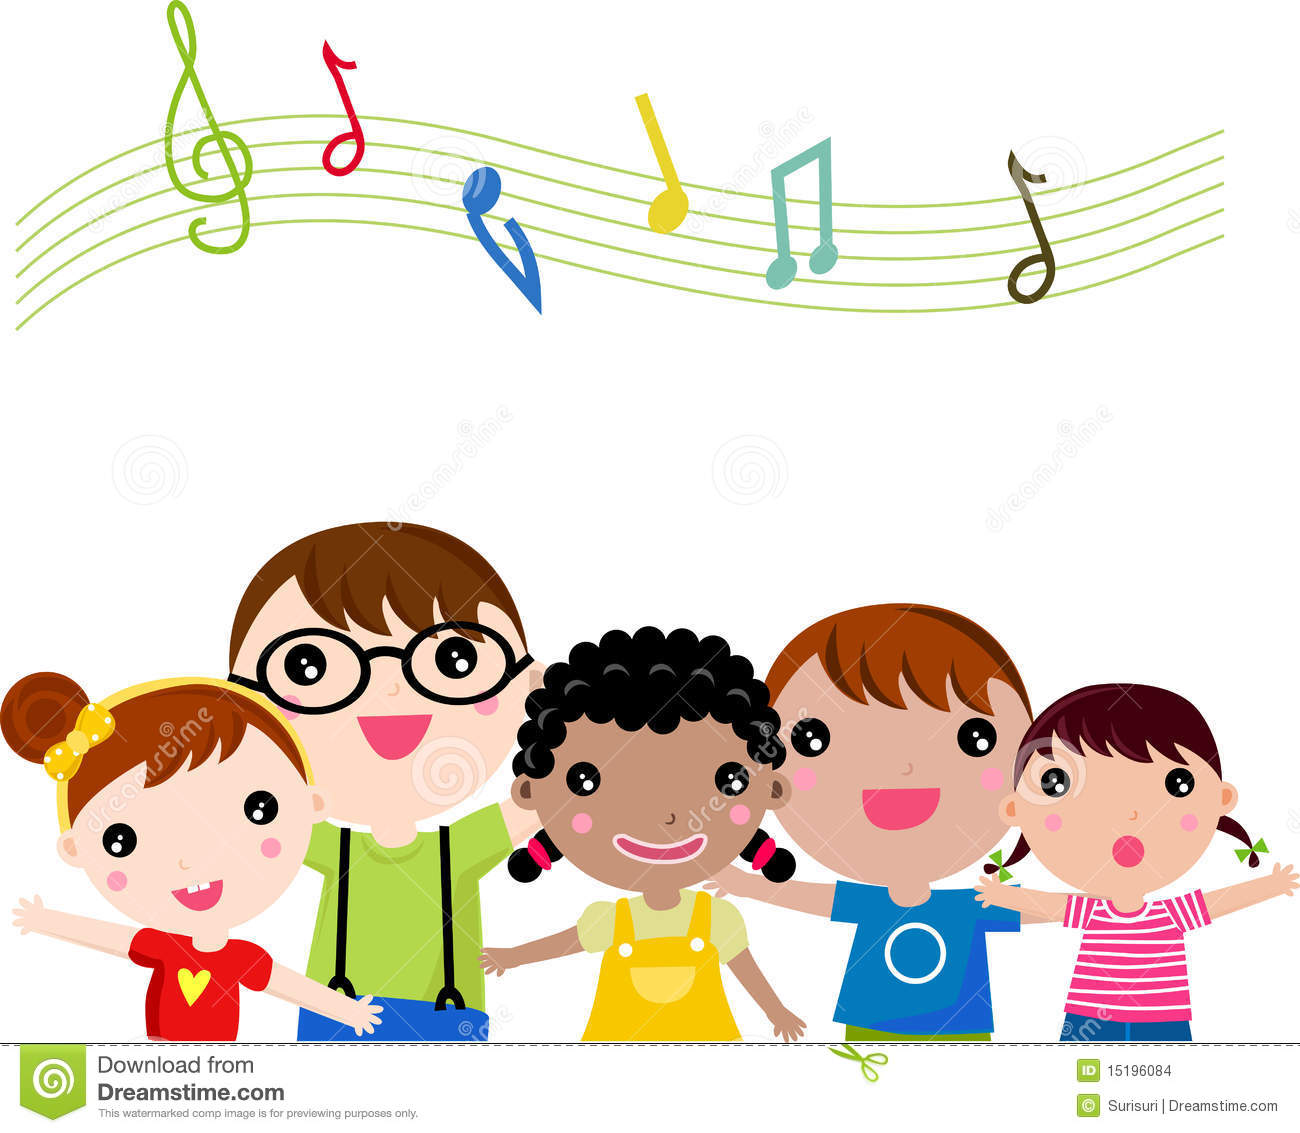 Clip Art Singing Clip Art students singing clipart kid clip art children stock images image image